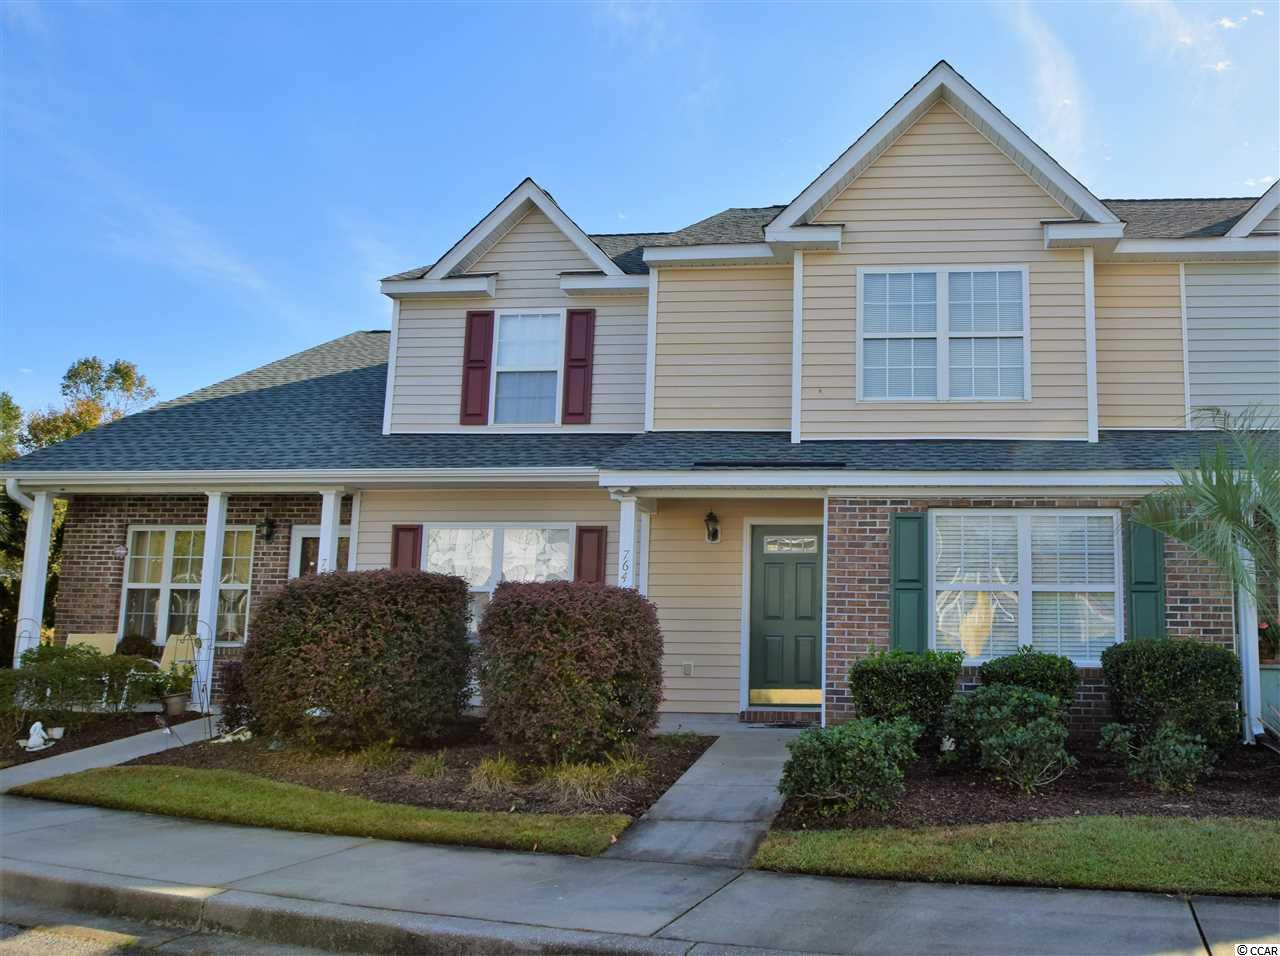 Townhouse MLS:1723513 WYNBROOKE TWNHM - Townhomes  764 Wilshire Lane Murrells Inlet SC